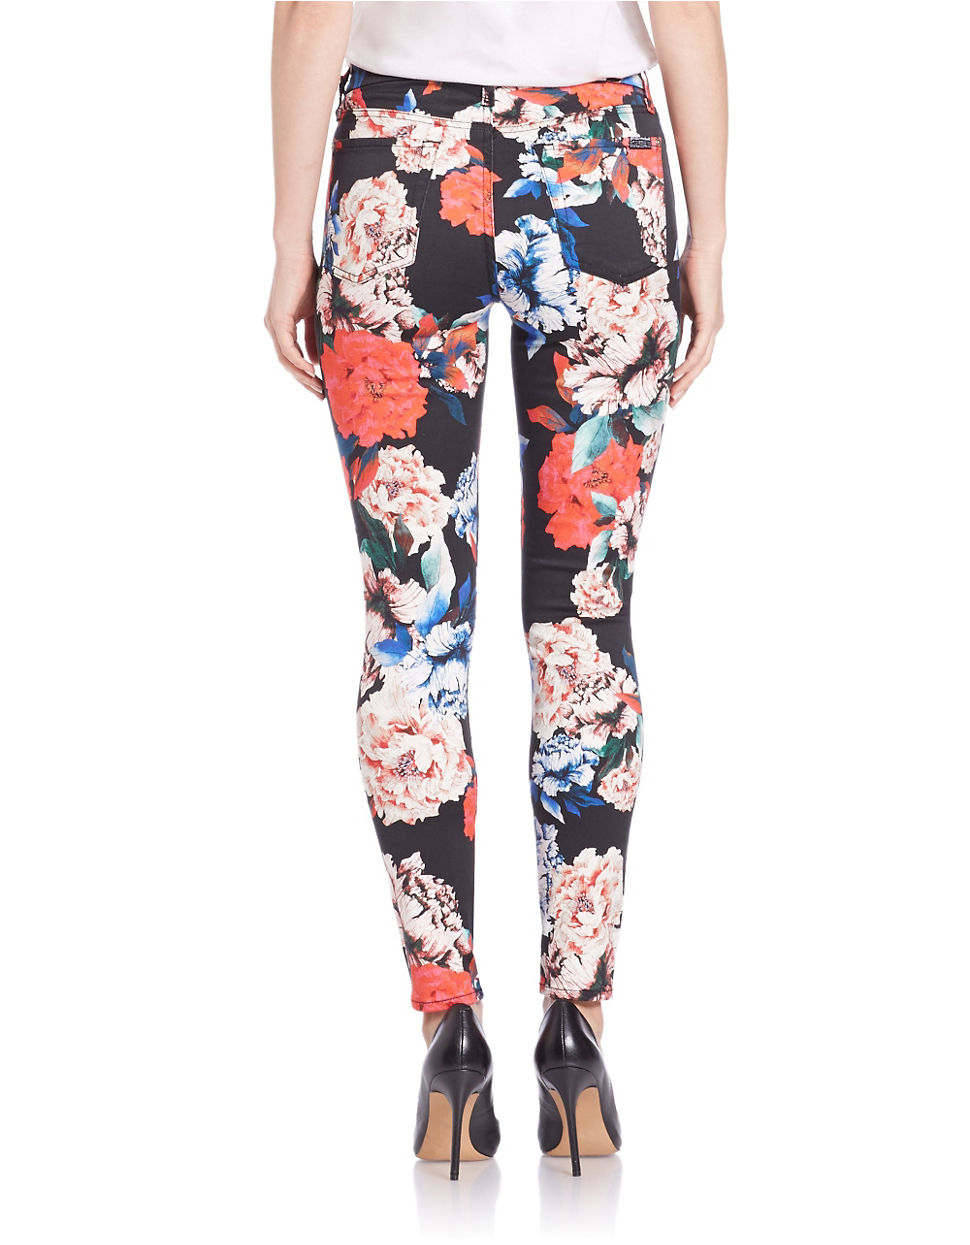 7 for all mankind Floral Print Skinny Jeans | Lyst